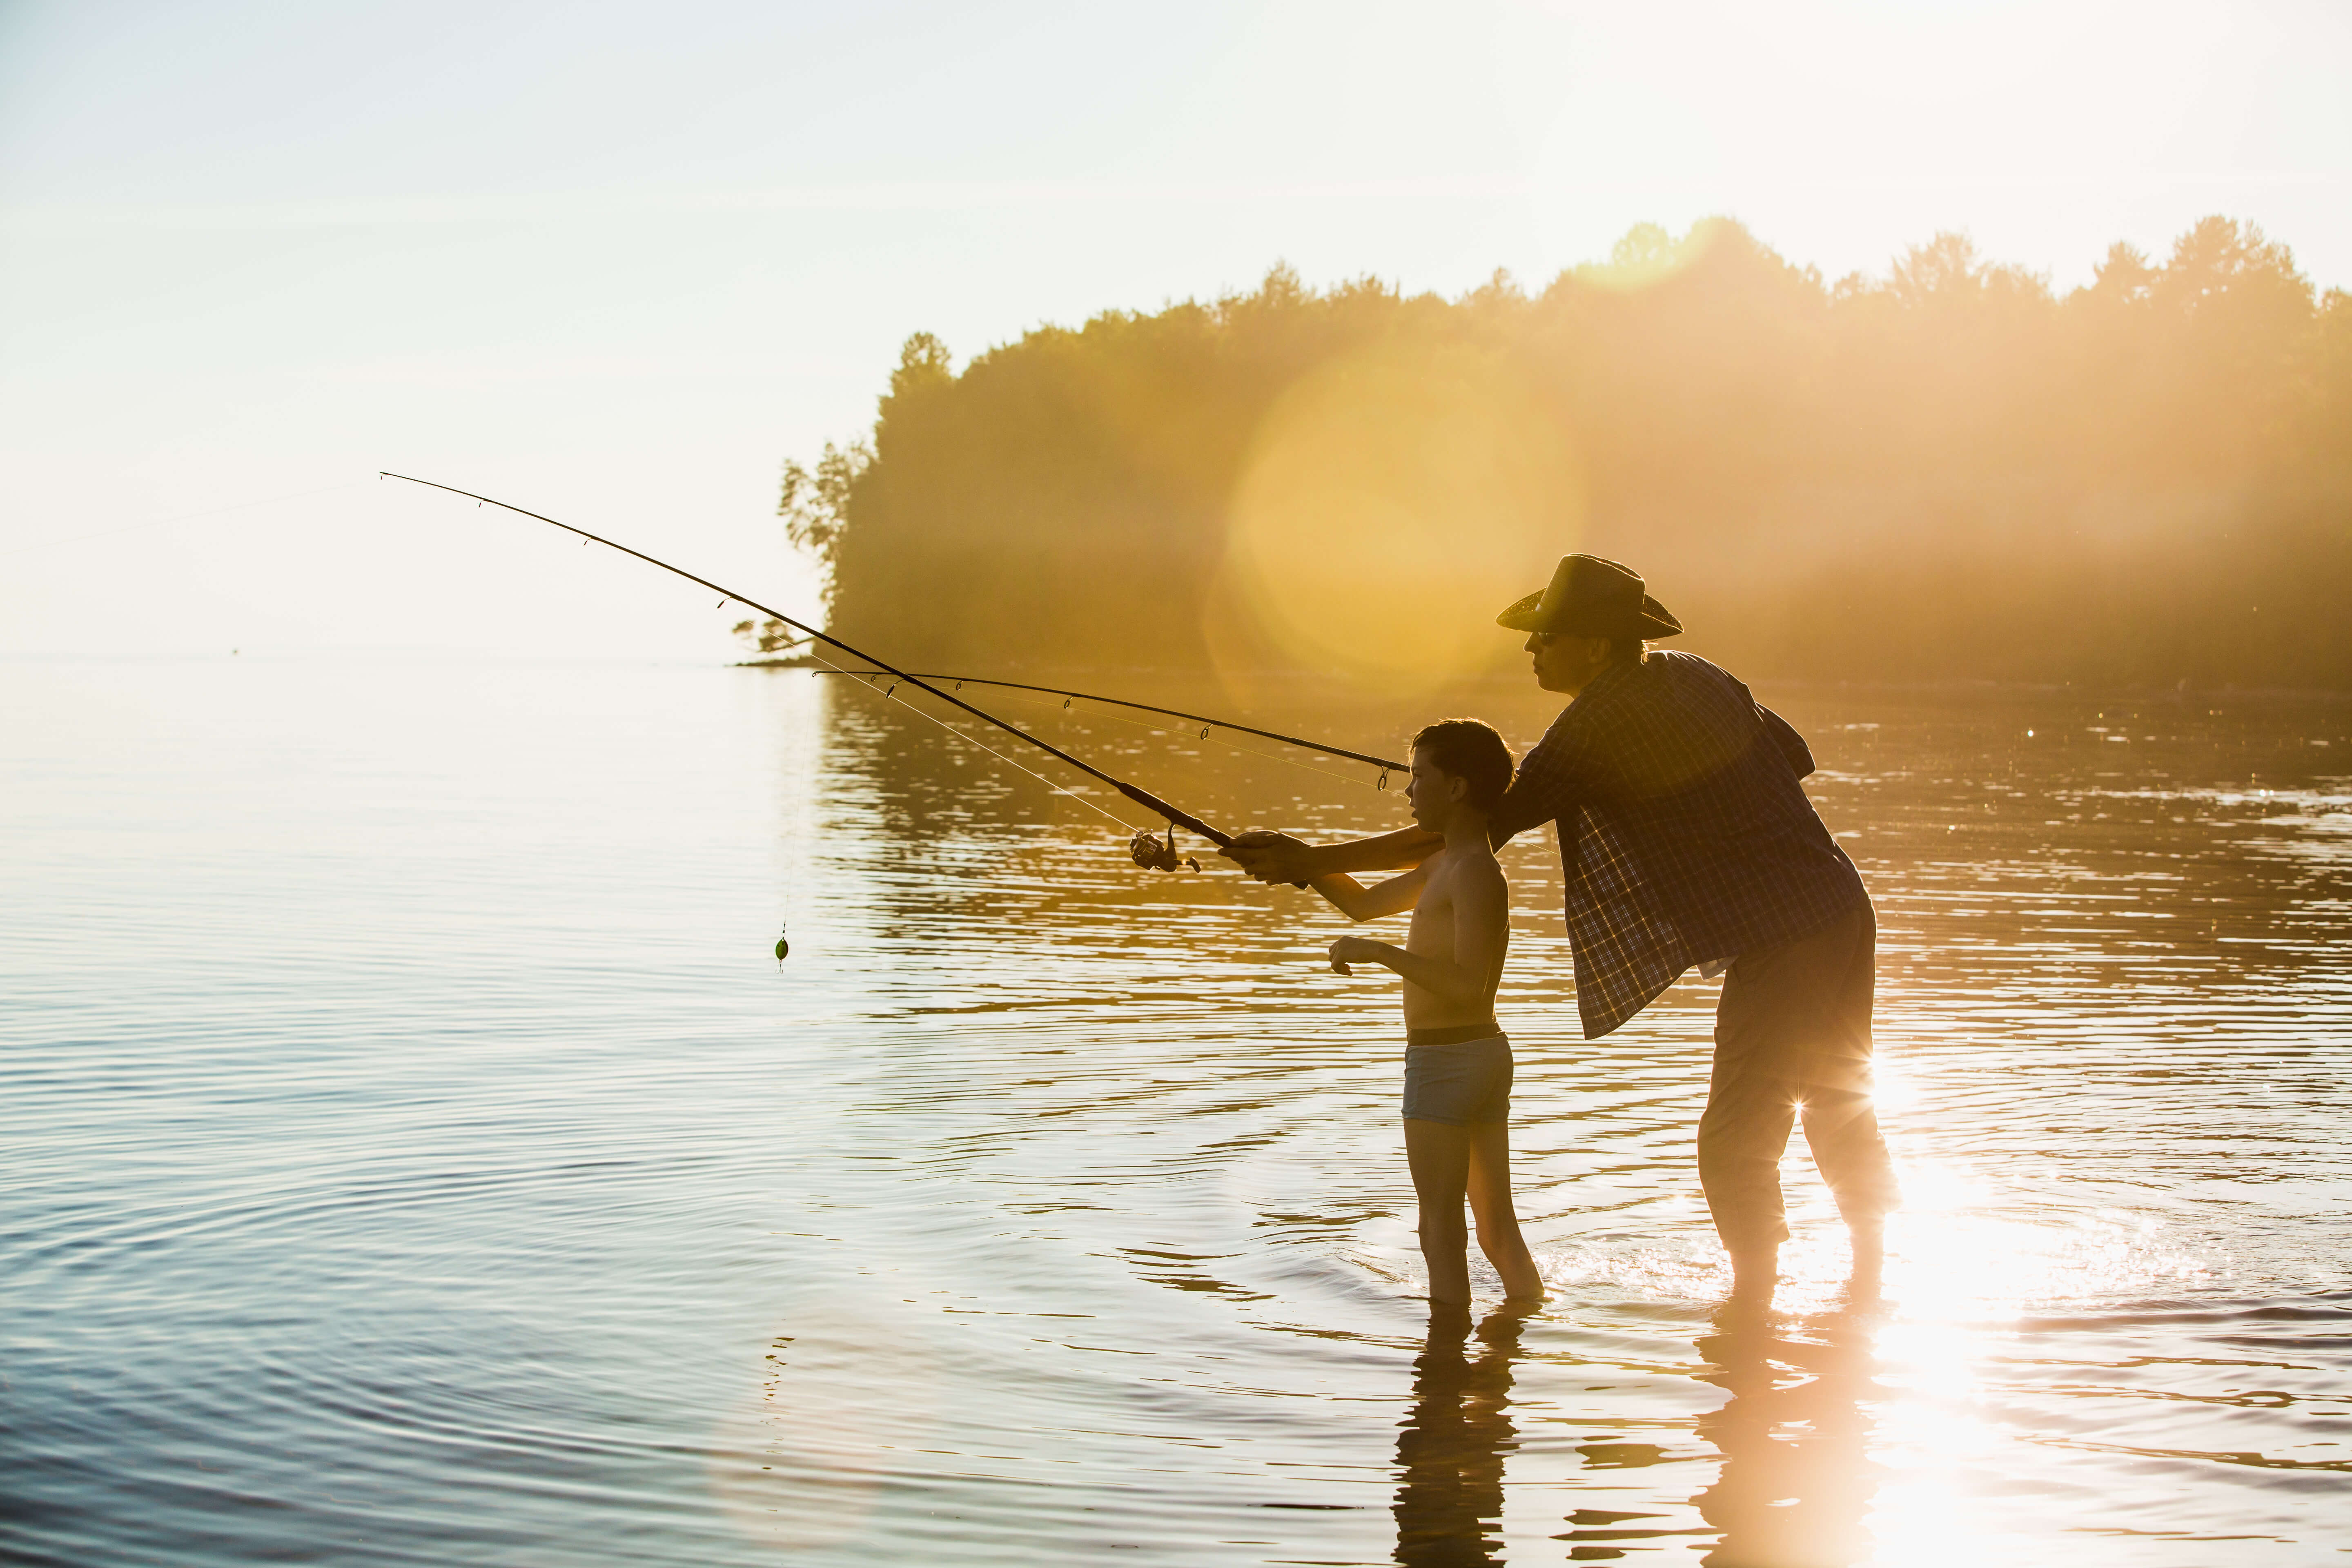 Fisherman and son at lake on sunset